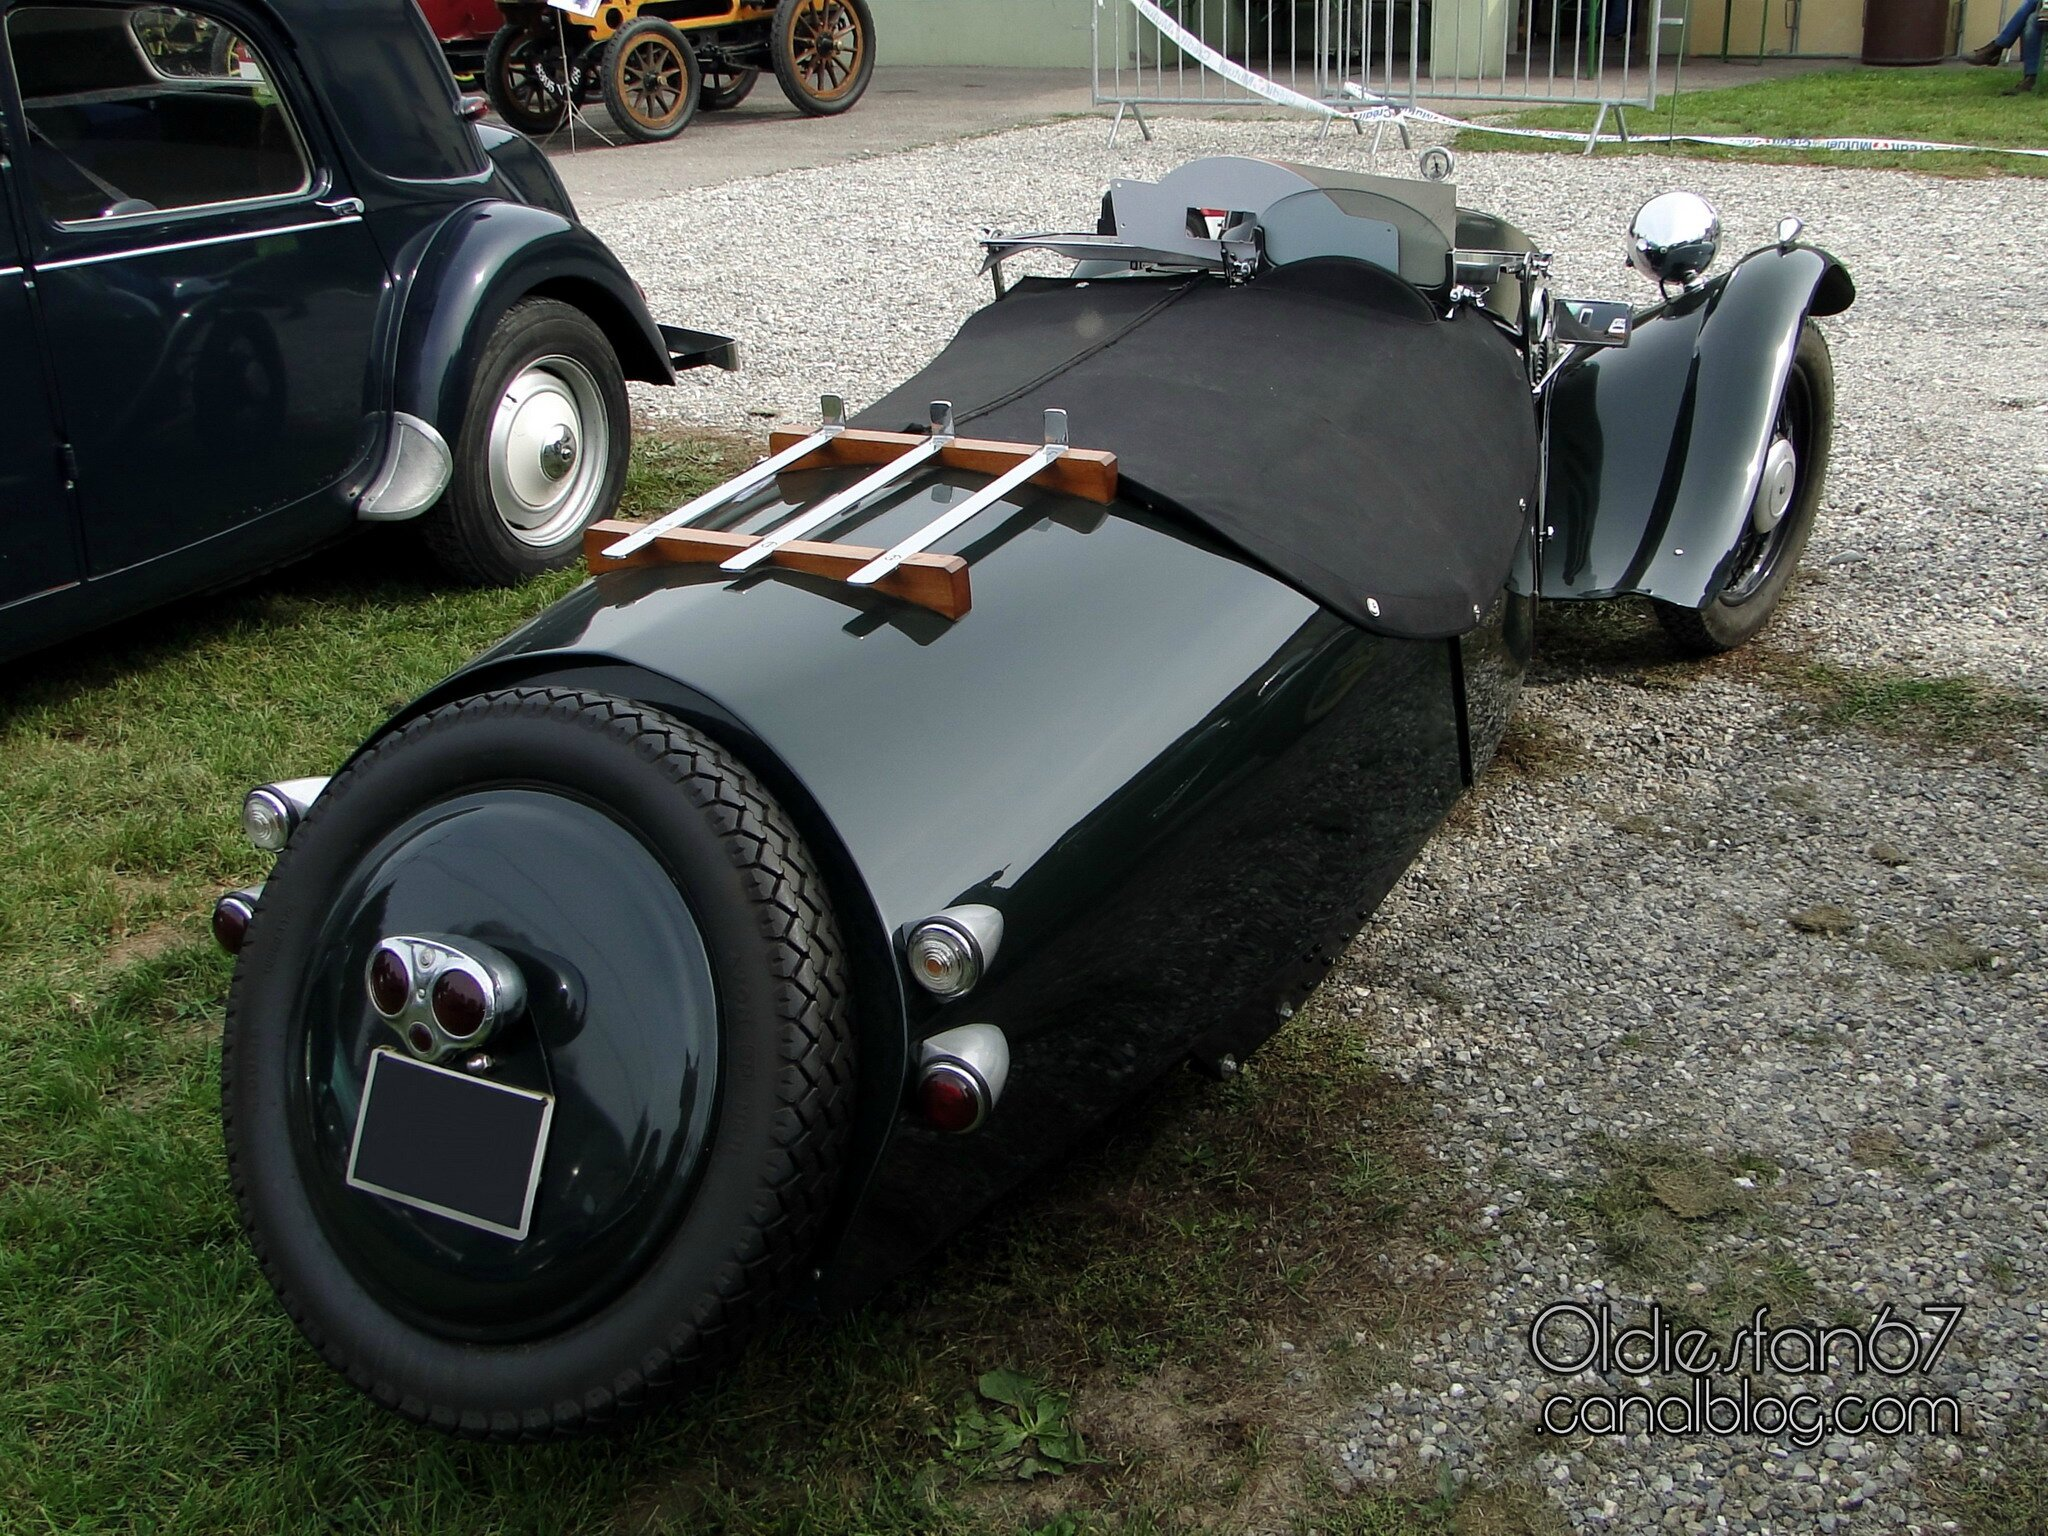 morgan f super three wheeler 1949 oldiesfan67 mon blog auto. Black Bedroom Furniture Sets. Home Design Ideas